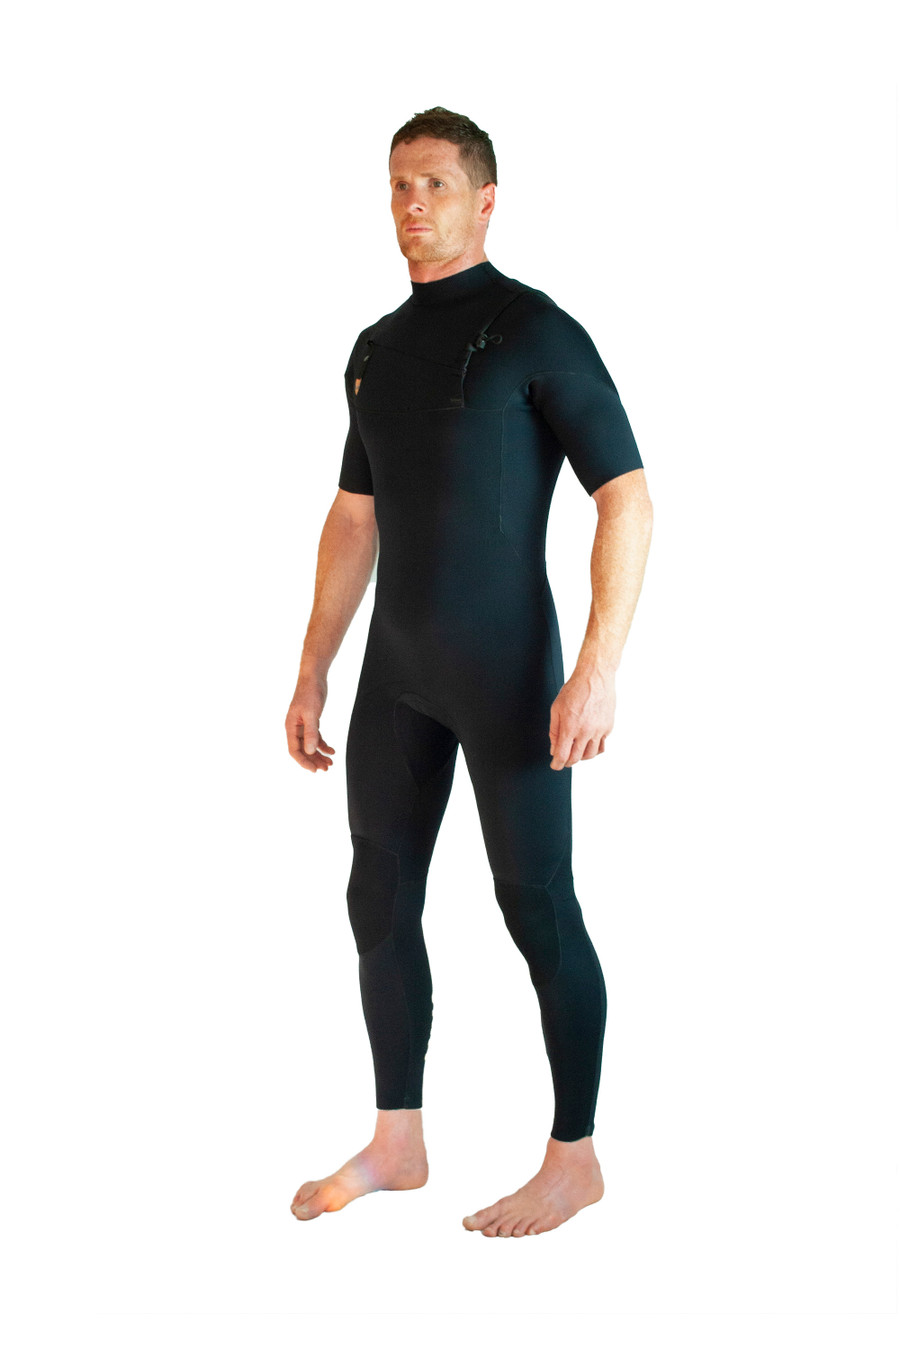 Lunasurf 2mm short arm summer wetsuit